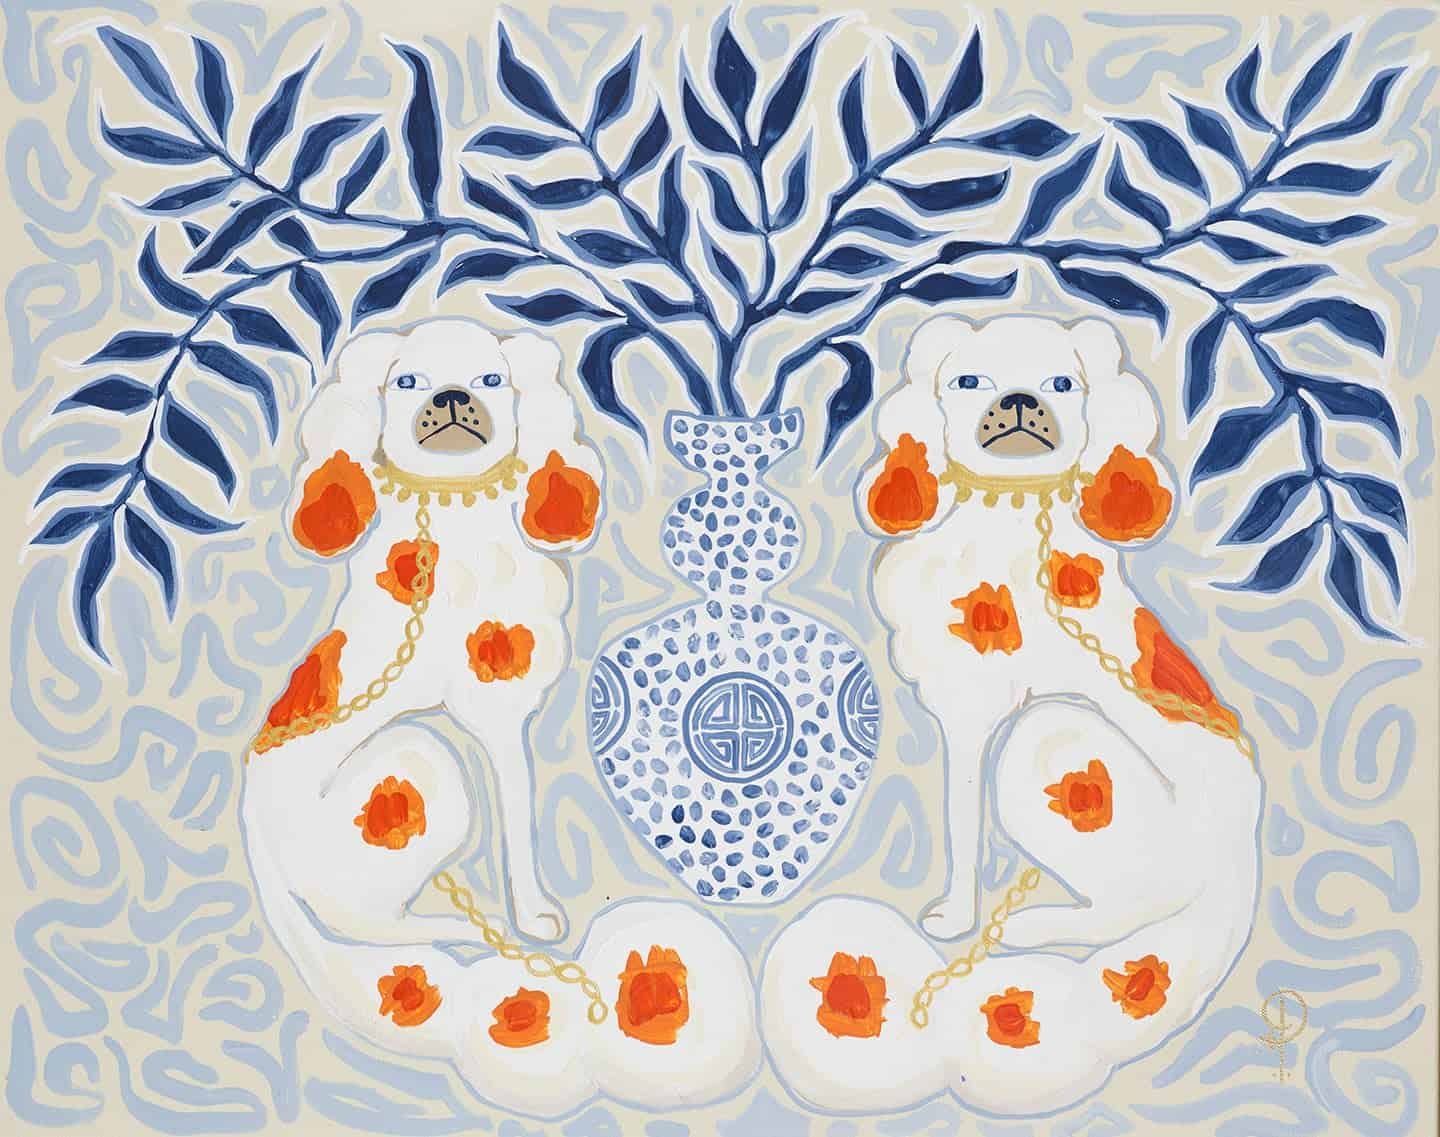 ART PRINT Staffordshire Dogs Chinoiserie by Paige Gemmel